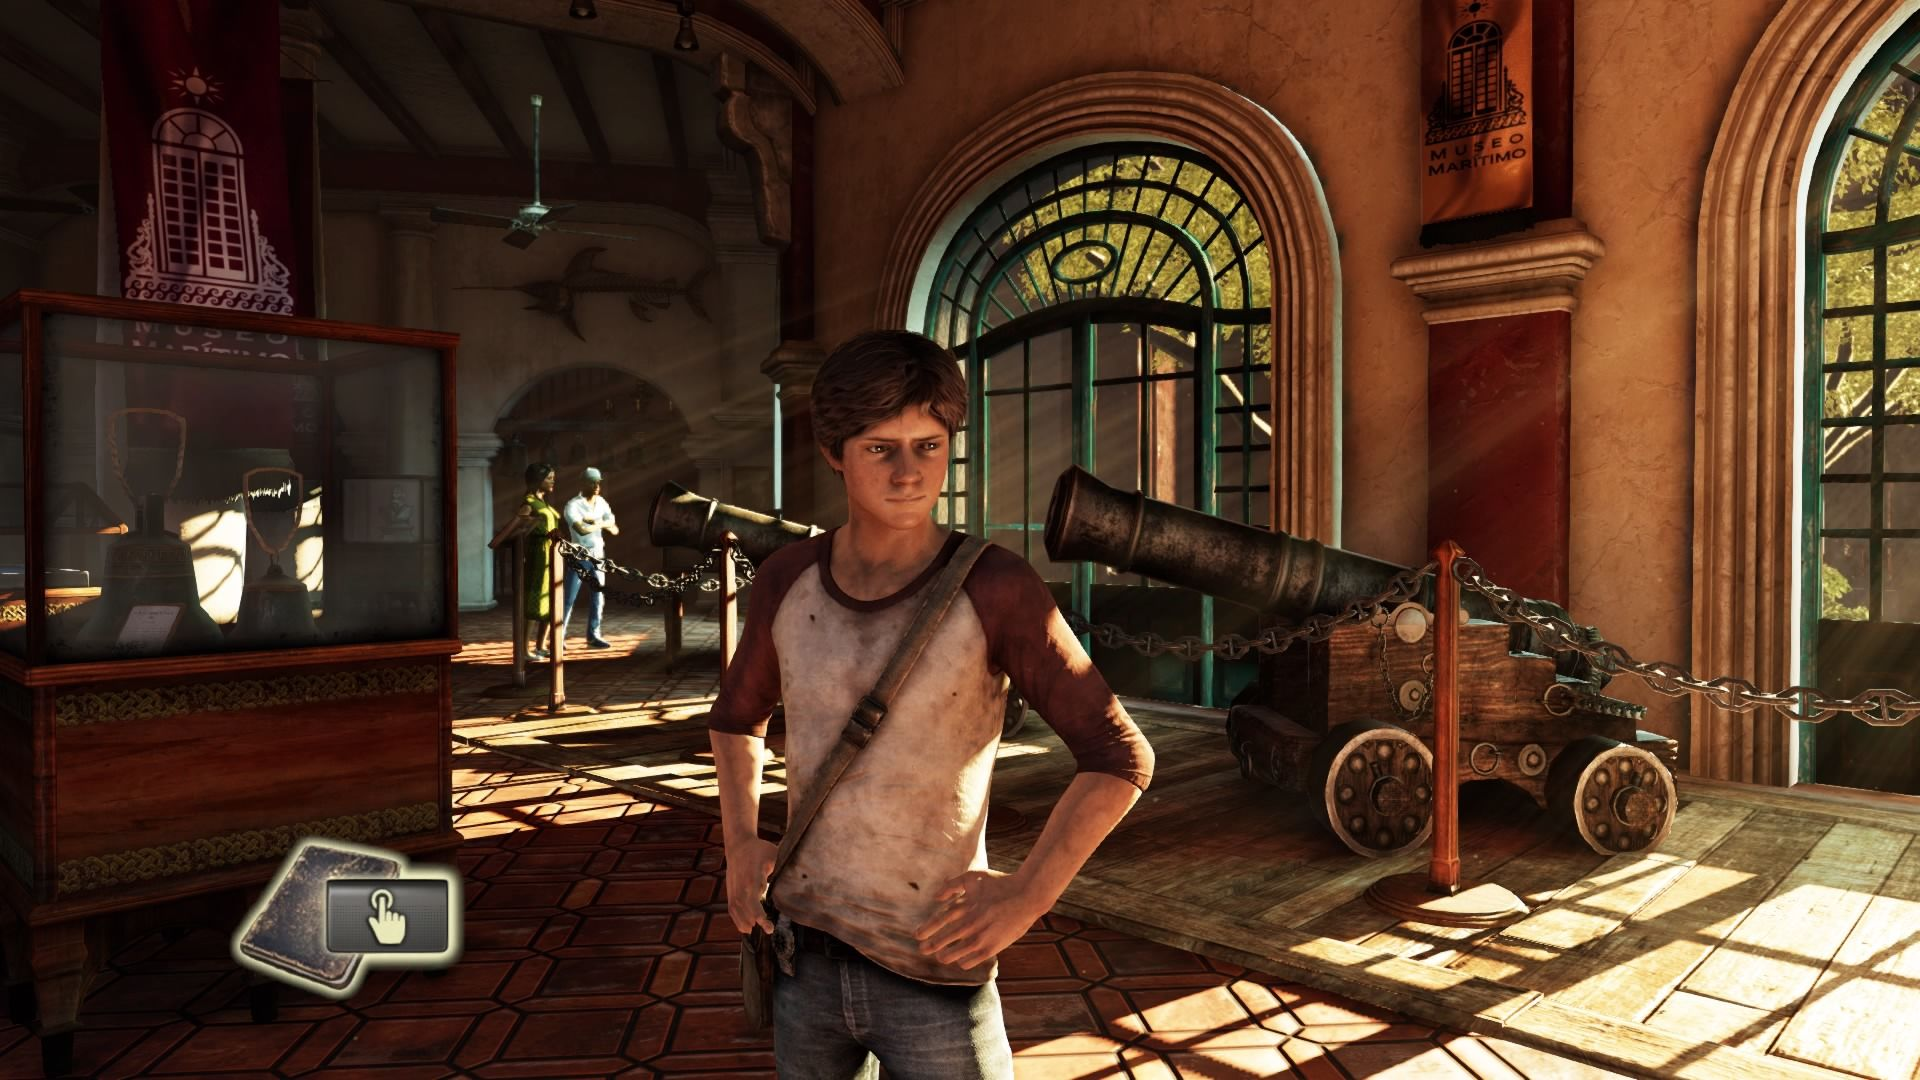 Does Uncharted 3 Look Better Than Many Aaa Games Out In 2019